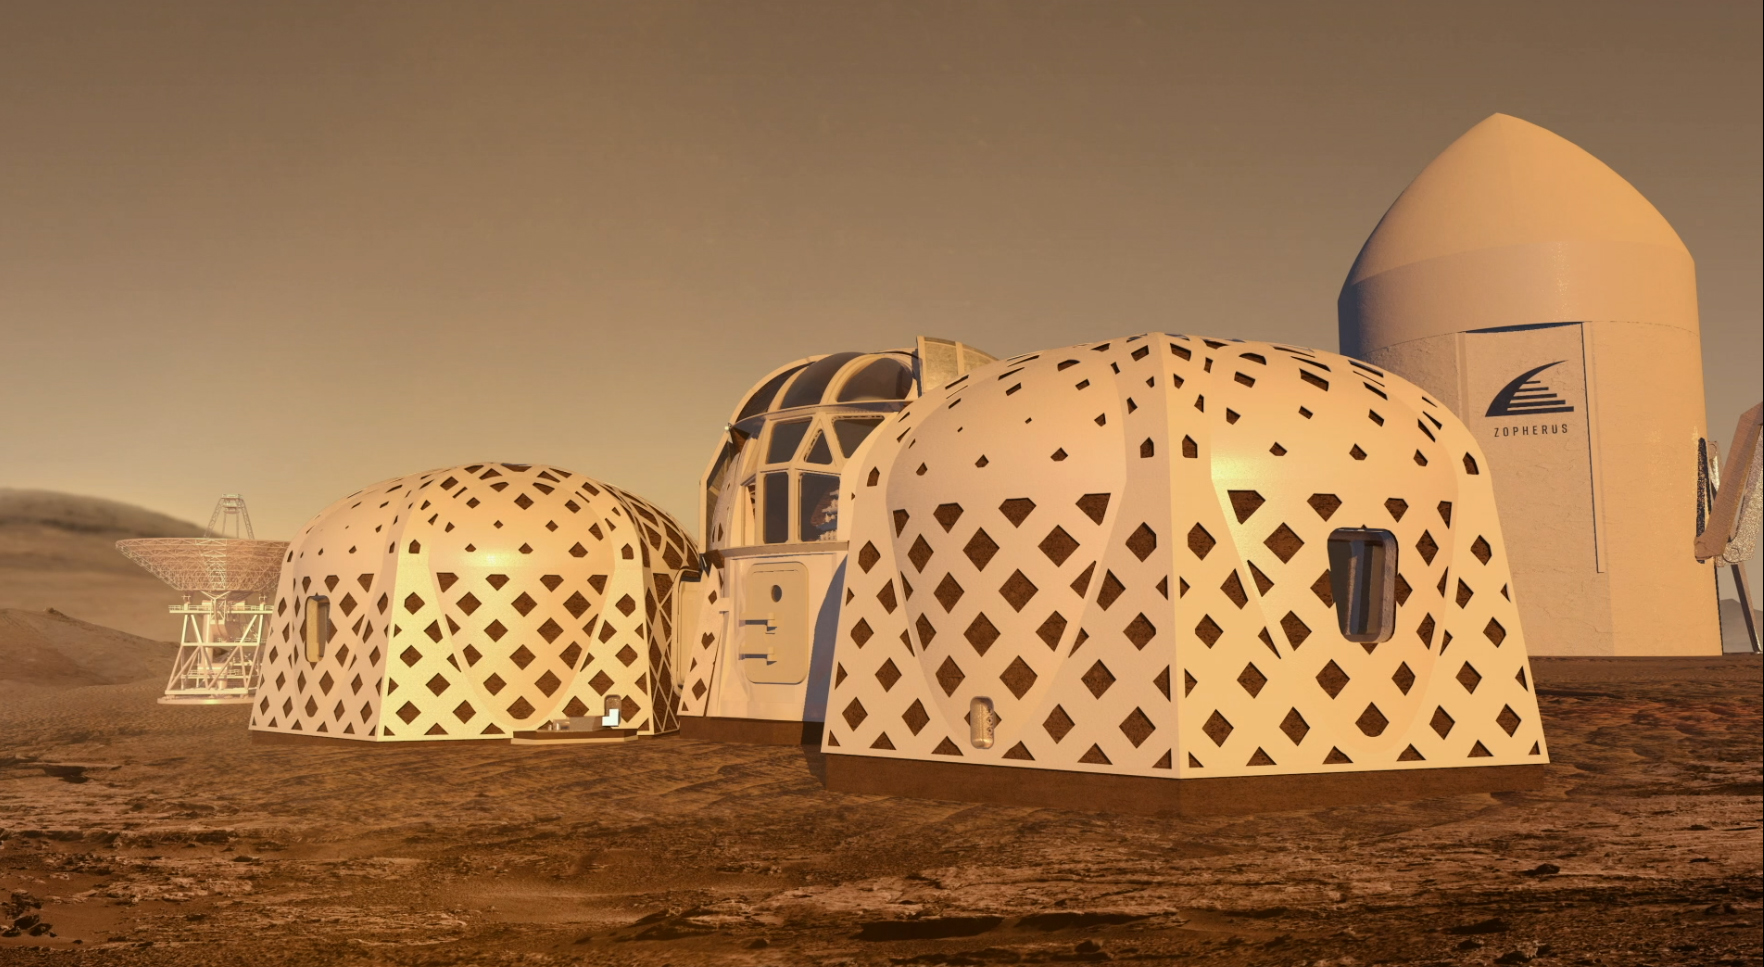 NASA Announces Top Three Designs For Homes On Mars   CNN Style